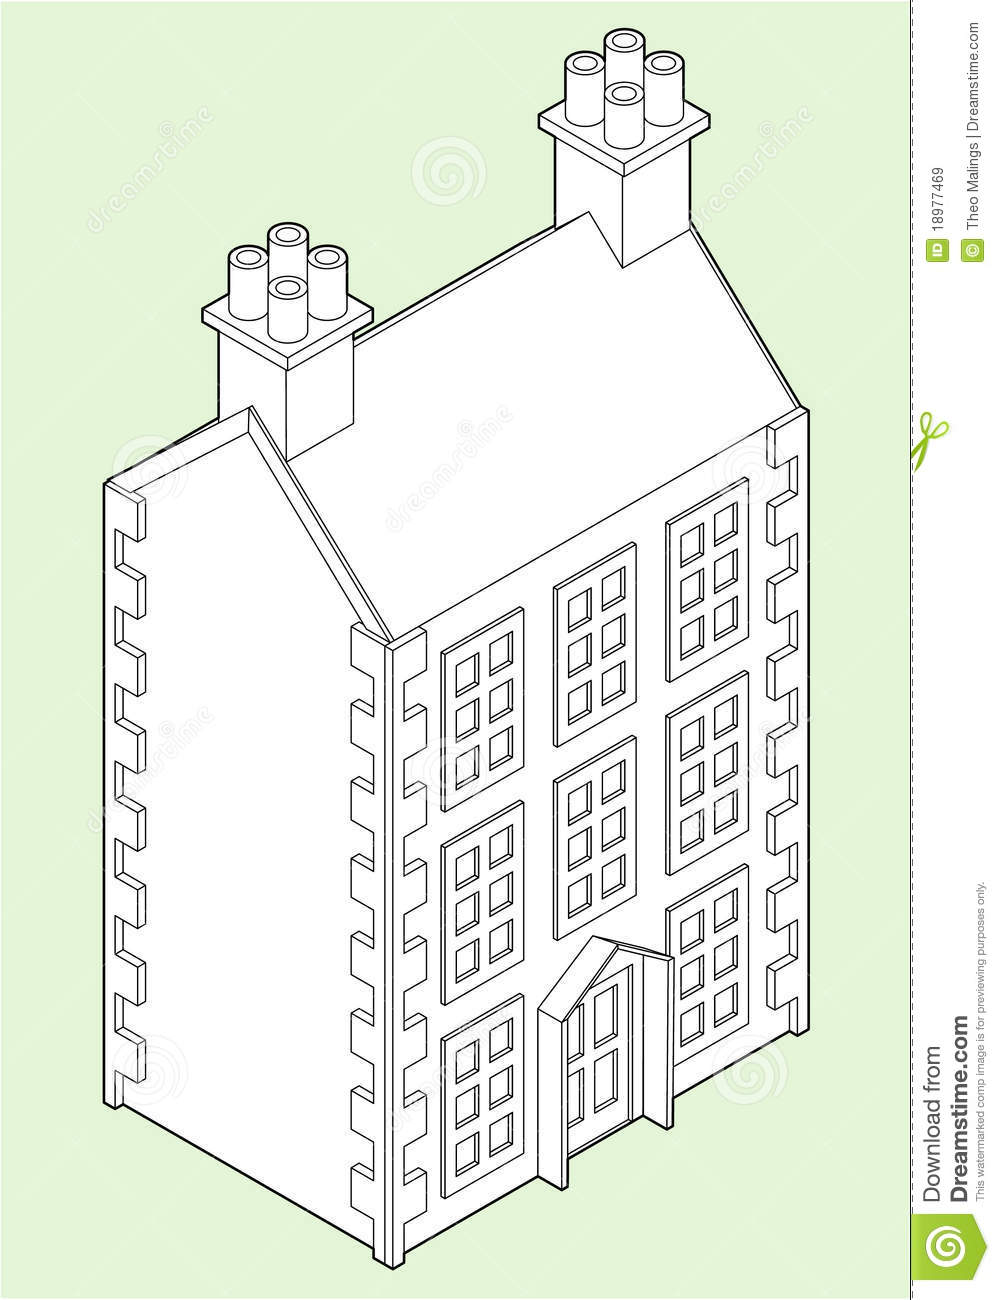 Isometric House Drawing Isometric dolls house drawing